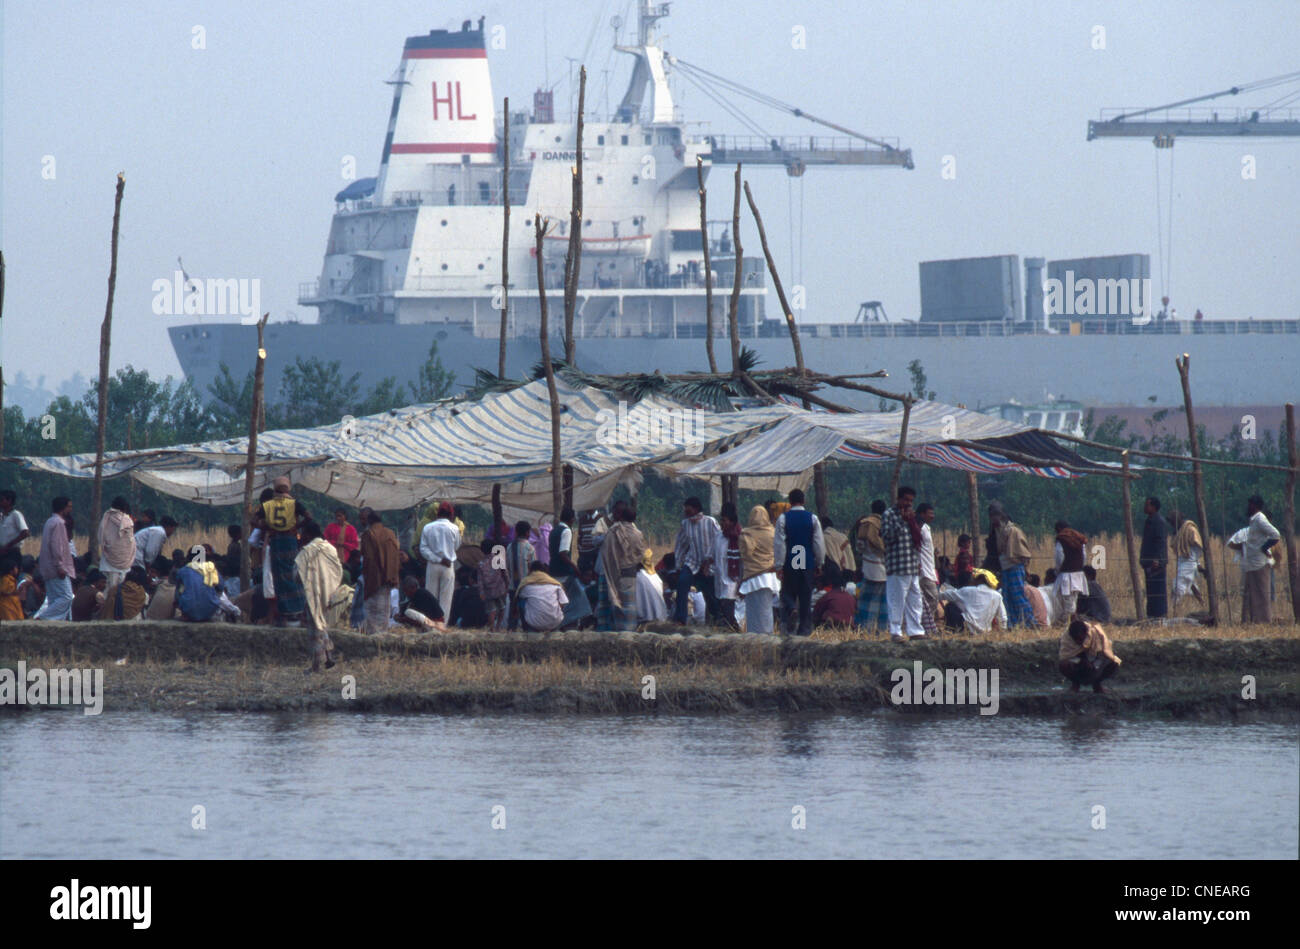 Dahka. A marketplace in the Buriganga river. (Ganges-Brahmaputra River Basin) and a big boat in the background - Stock Image